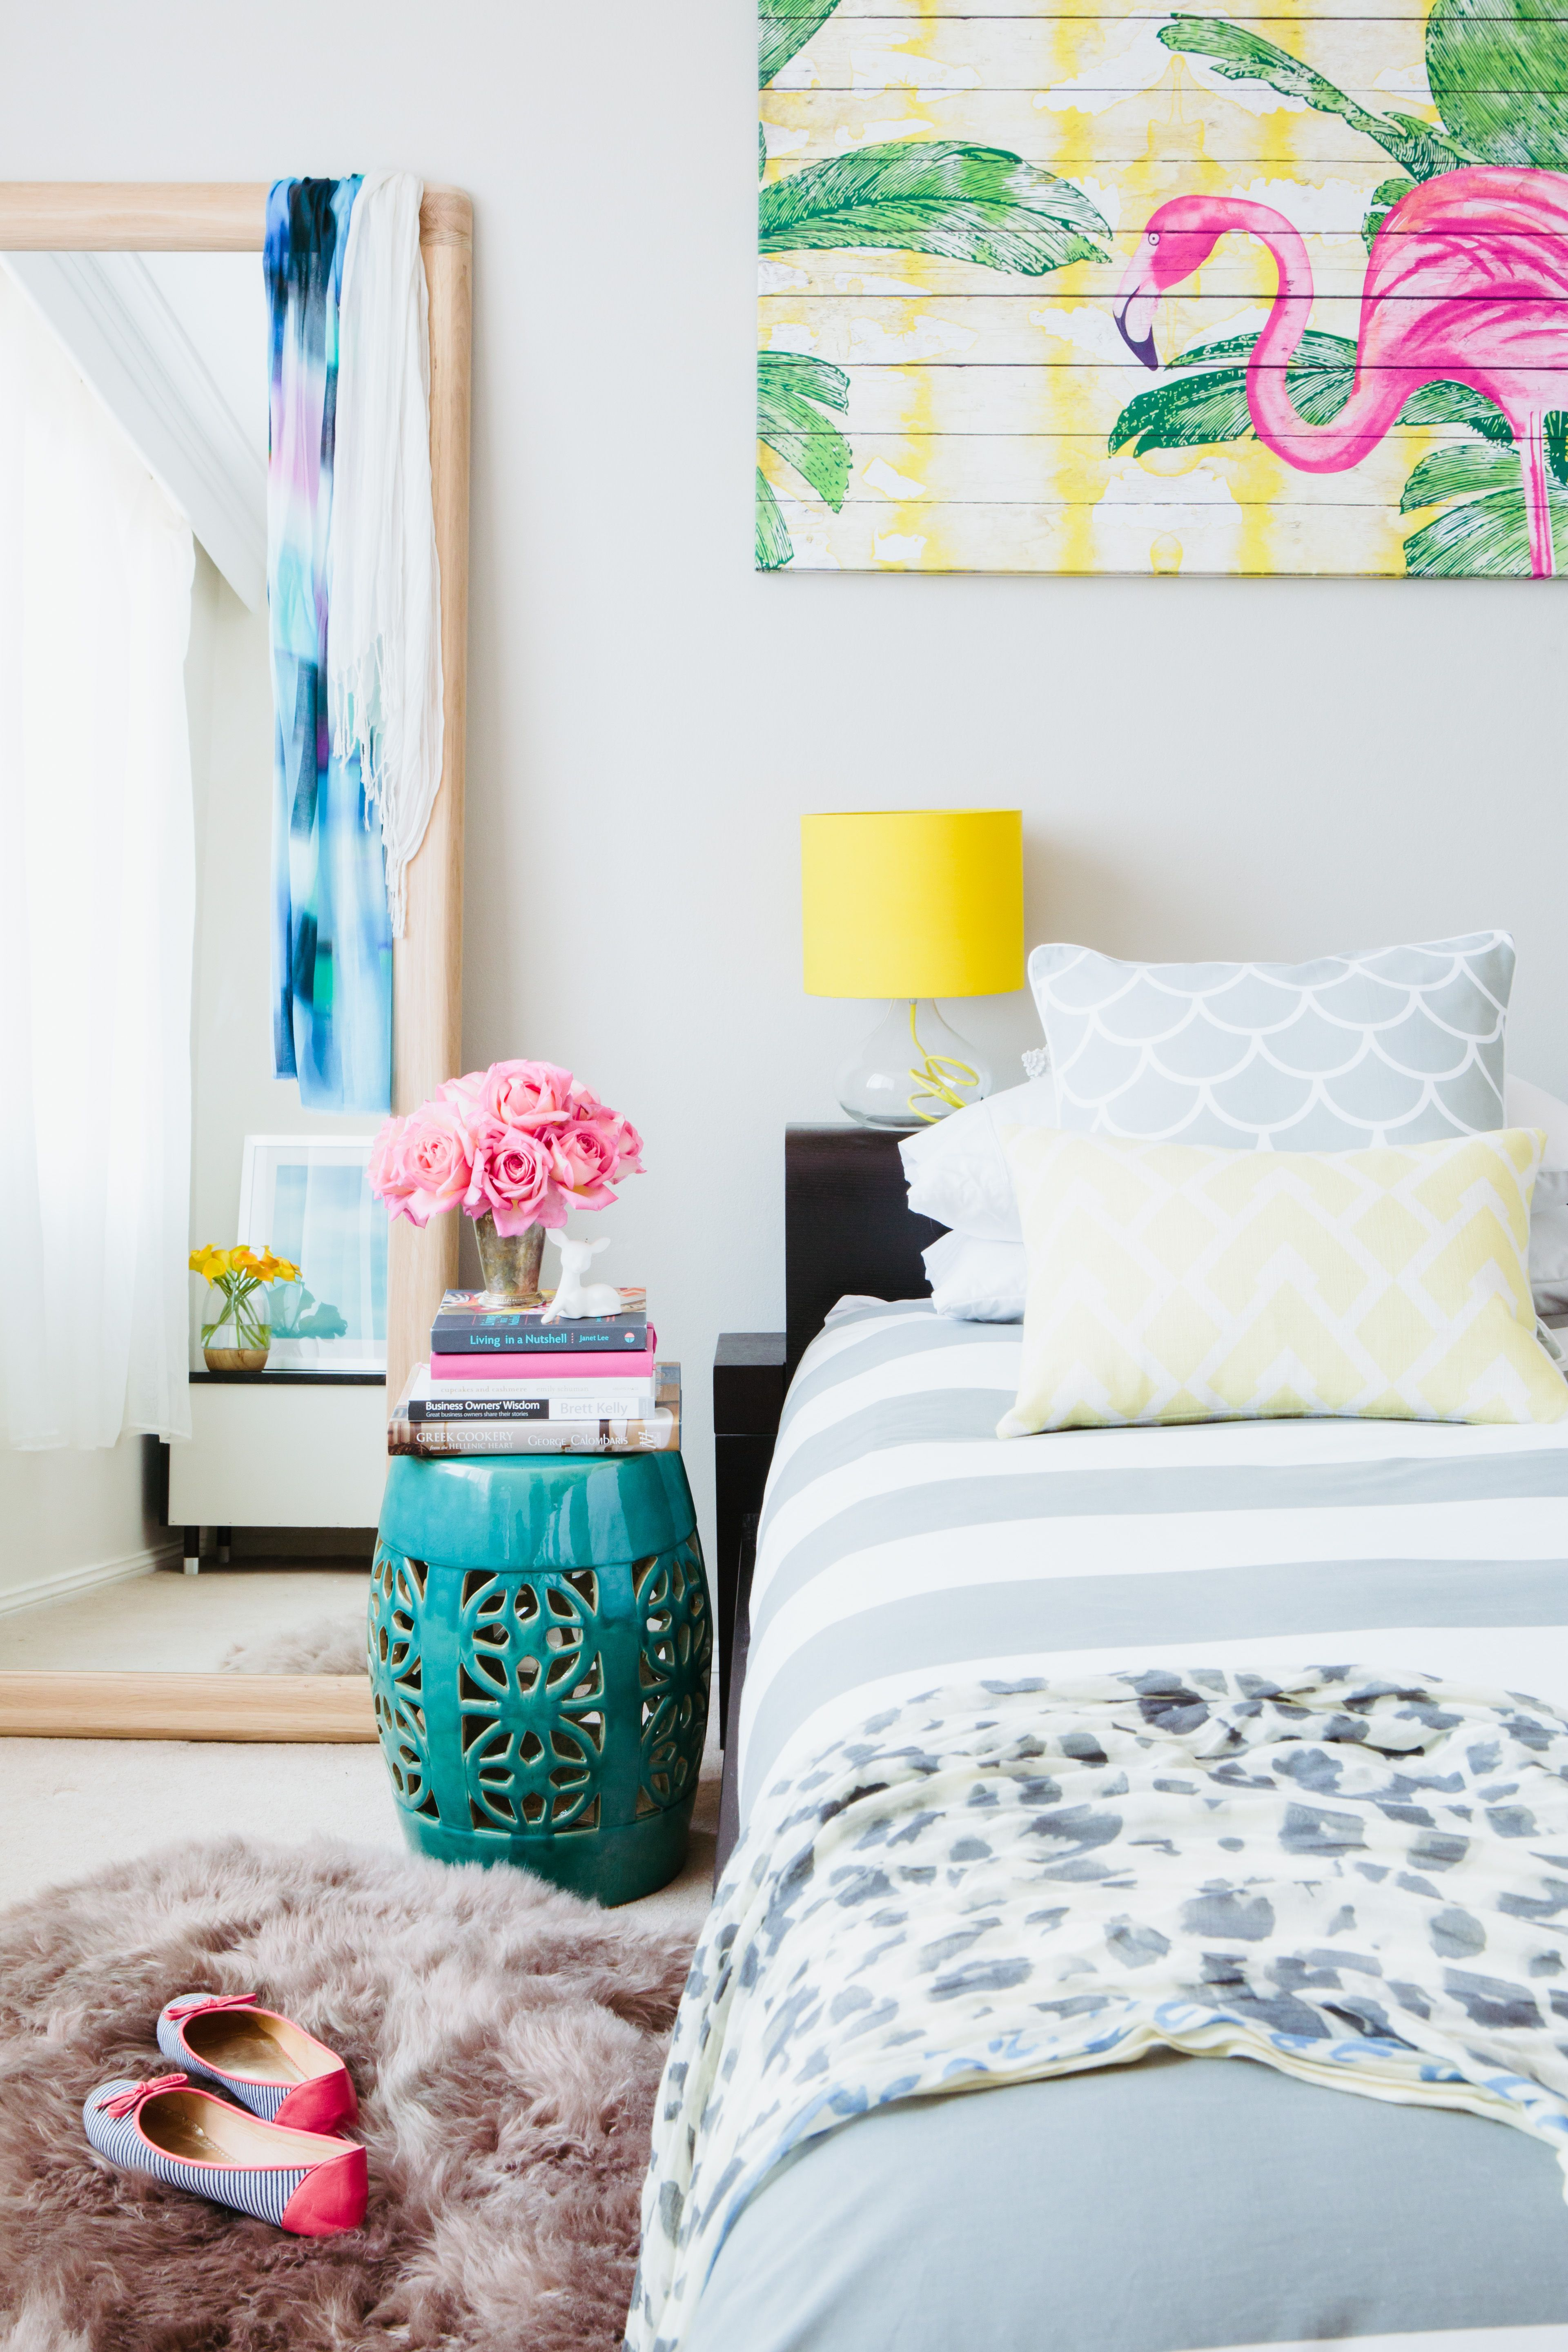 stunning bedroom stylingmarjorie silva from thehome.au <3